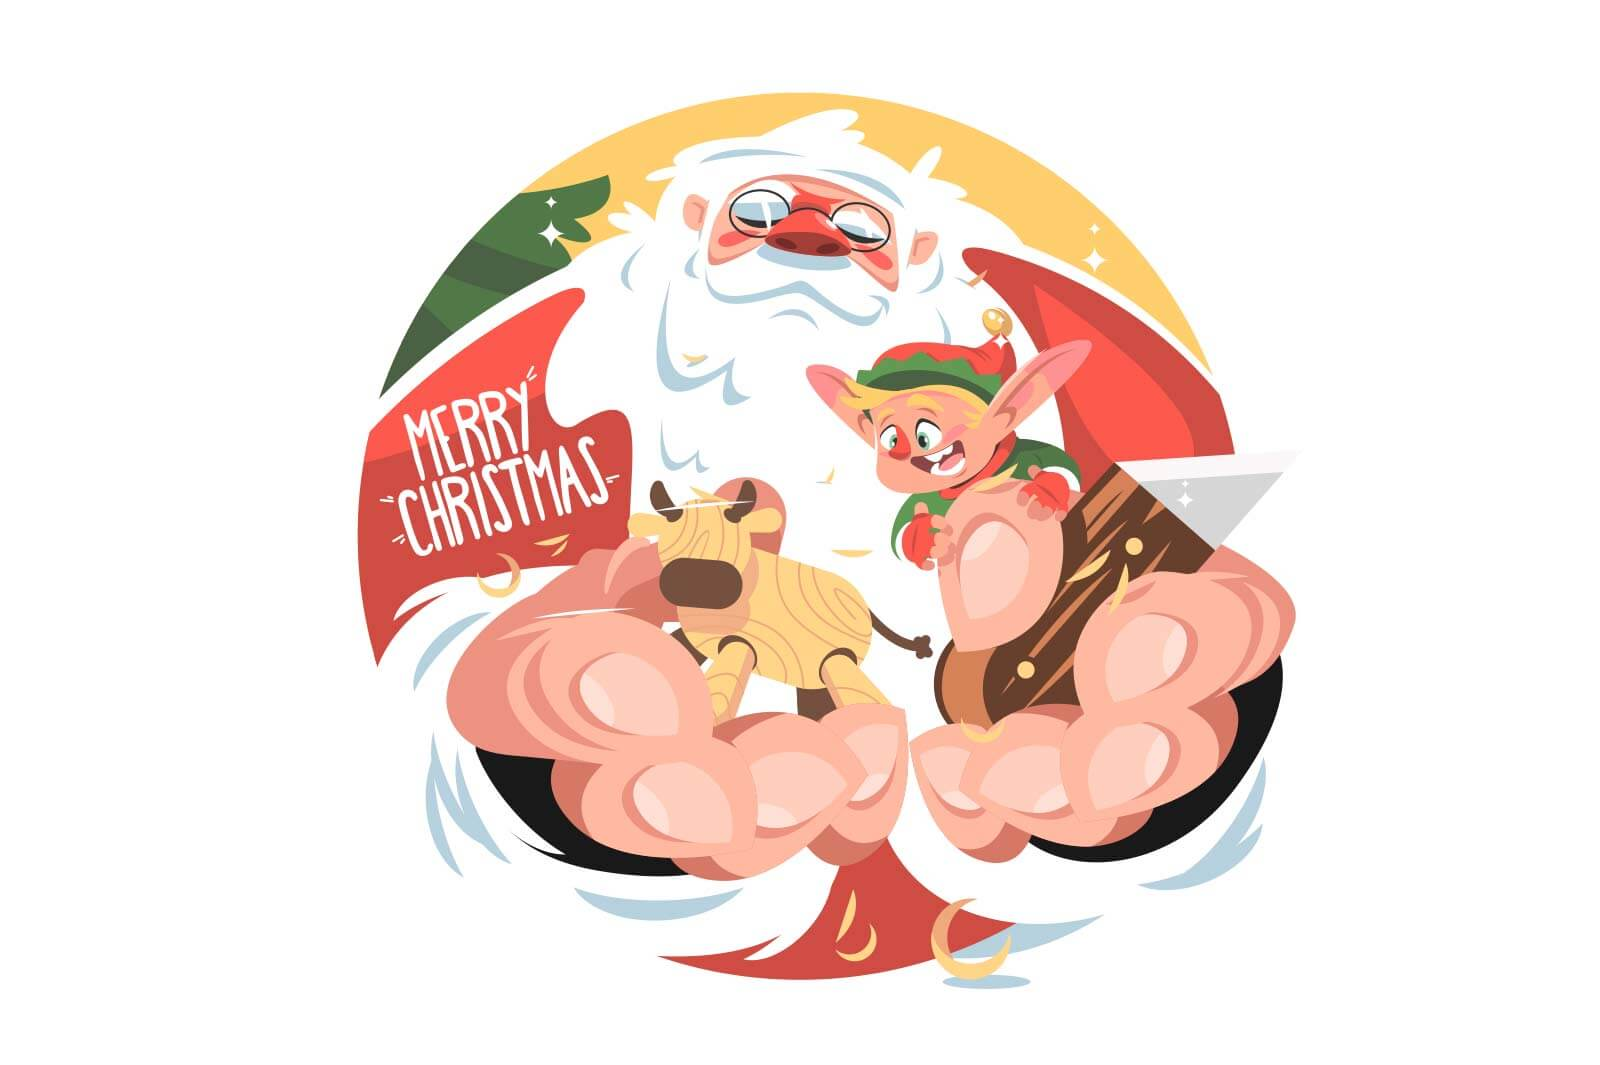 Santa claus make gift vector illustration. Toy made of wood flat style. Santas helper pixie on hand. Merry christmas and winter holiday concept. Isolated on white background